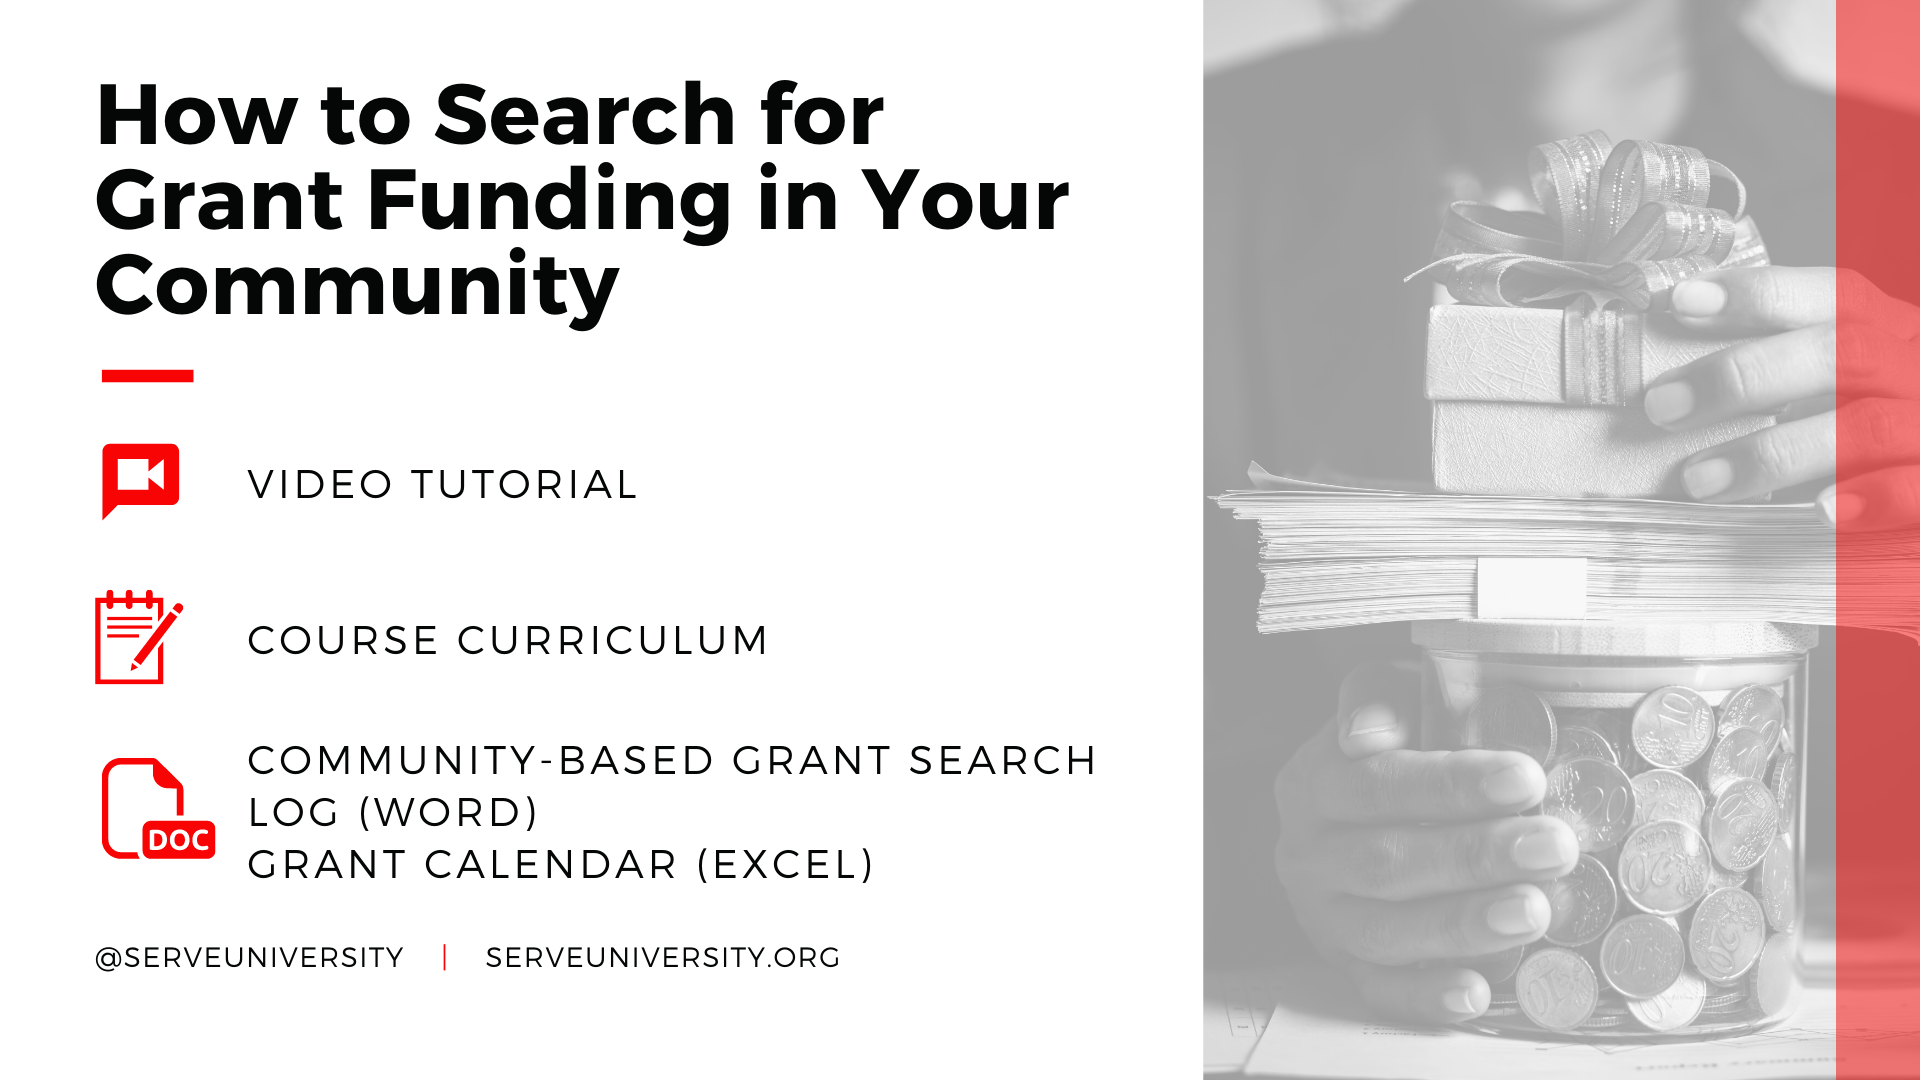 How to Search for Grant Funding in Your Community